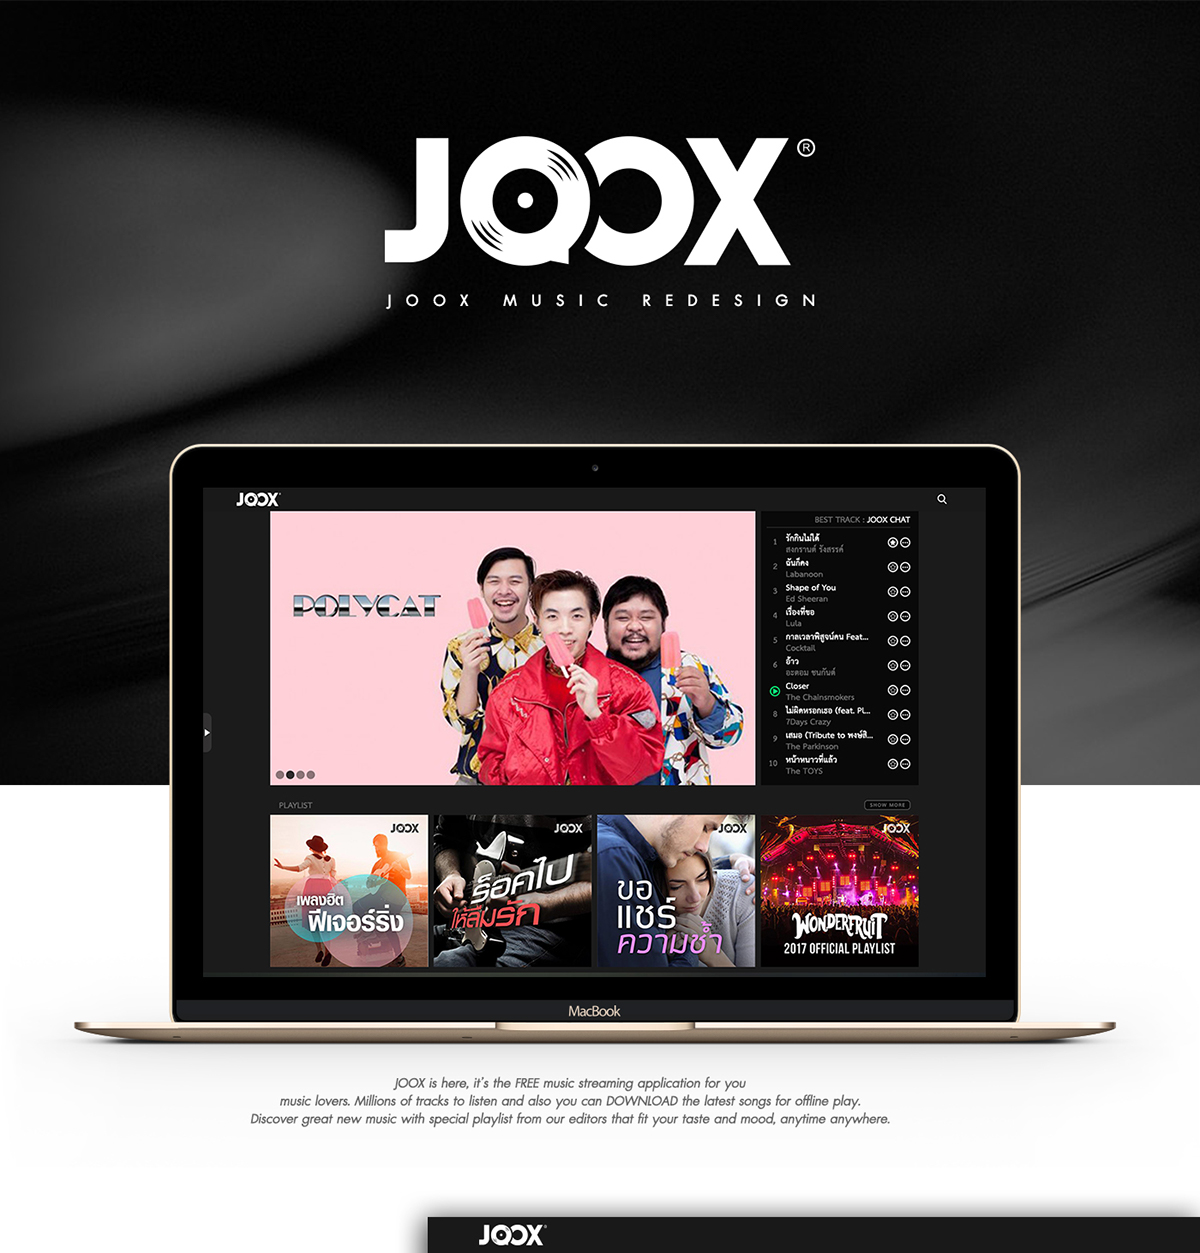 Joox music redesign concept on student show joox music redesign concept stopboris Images